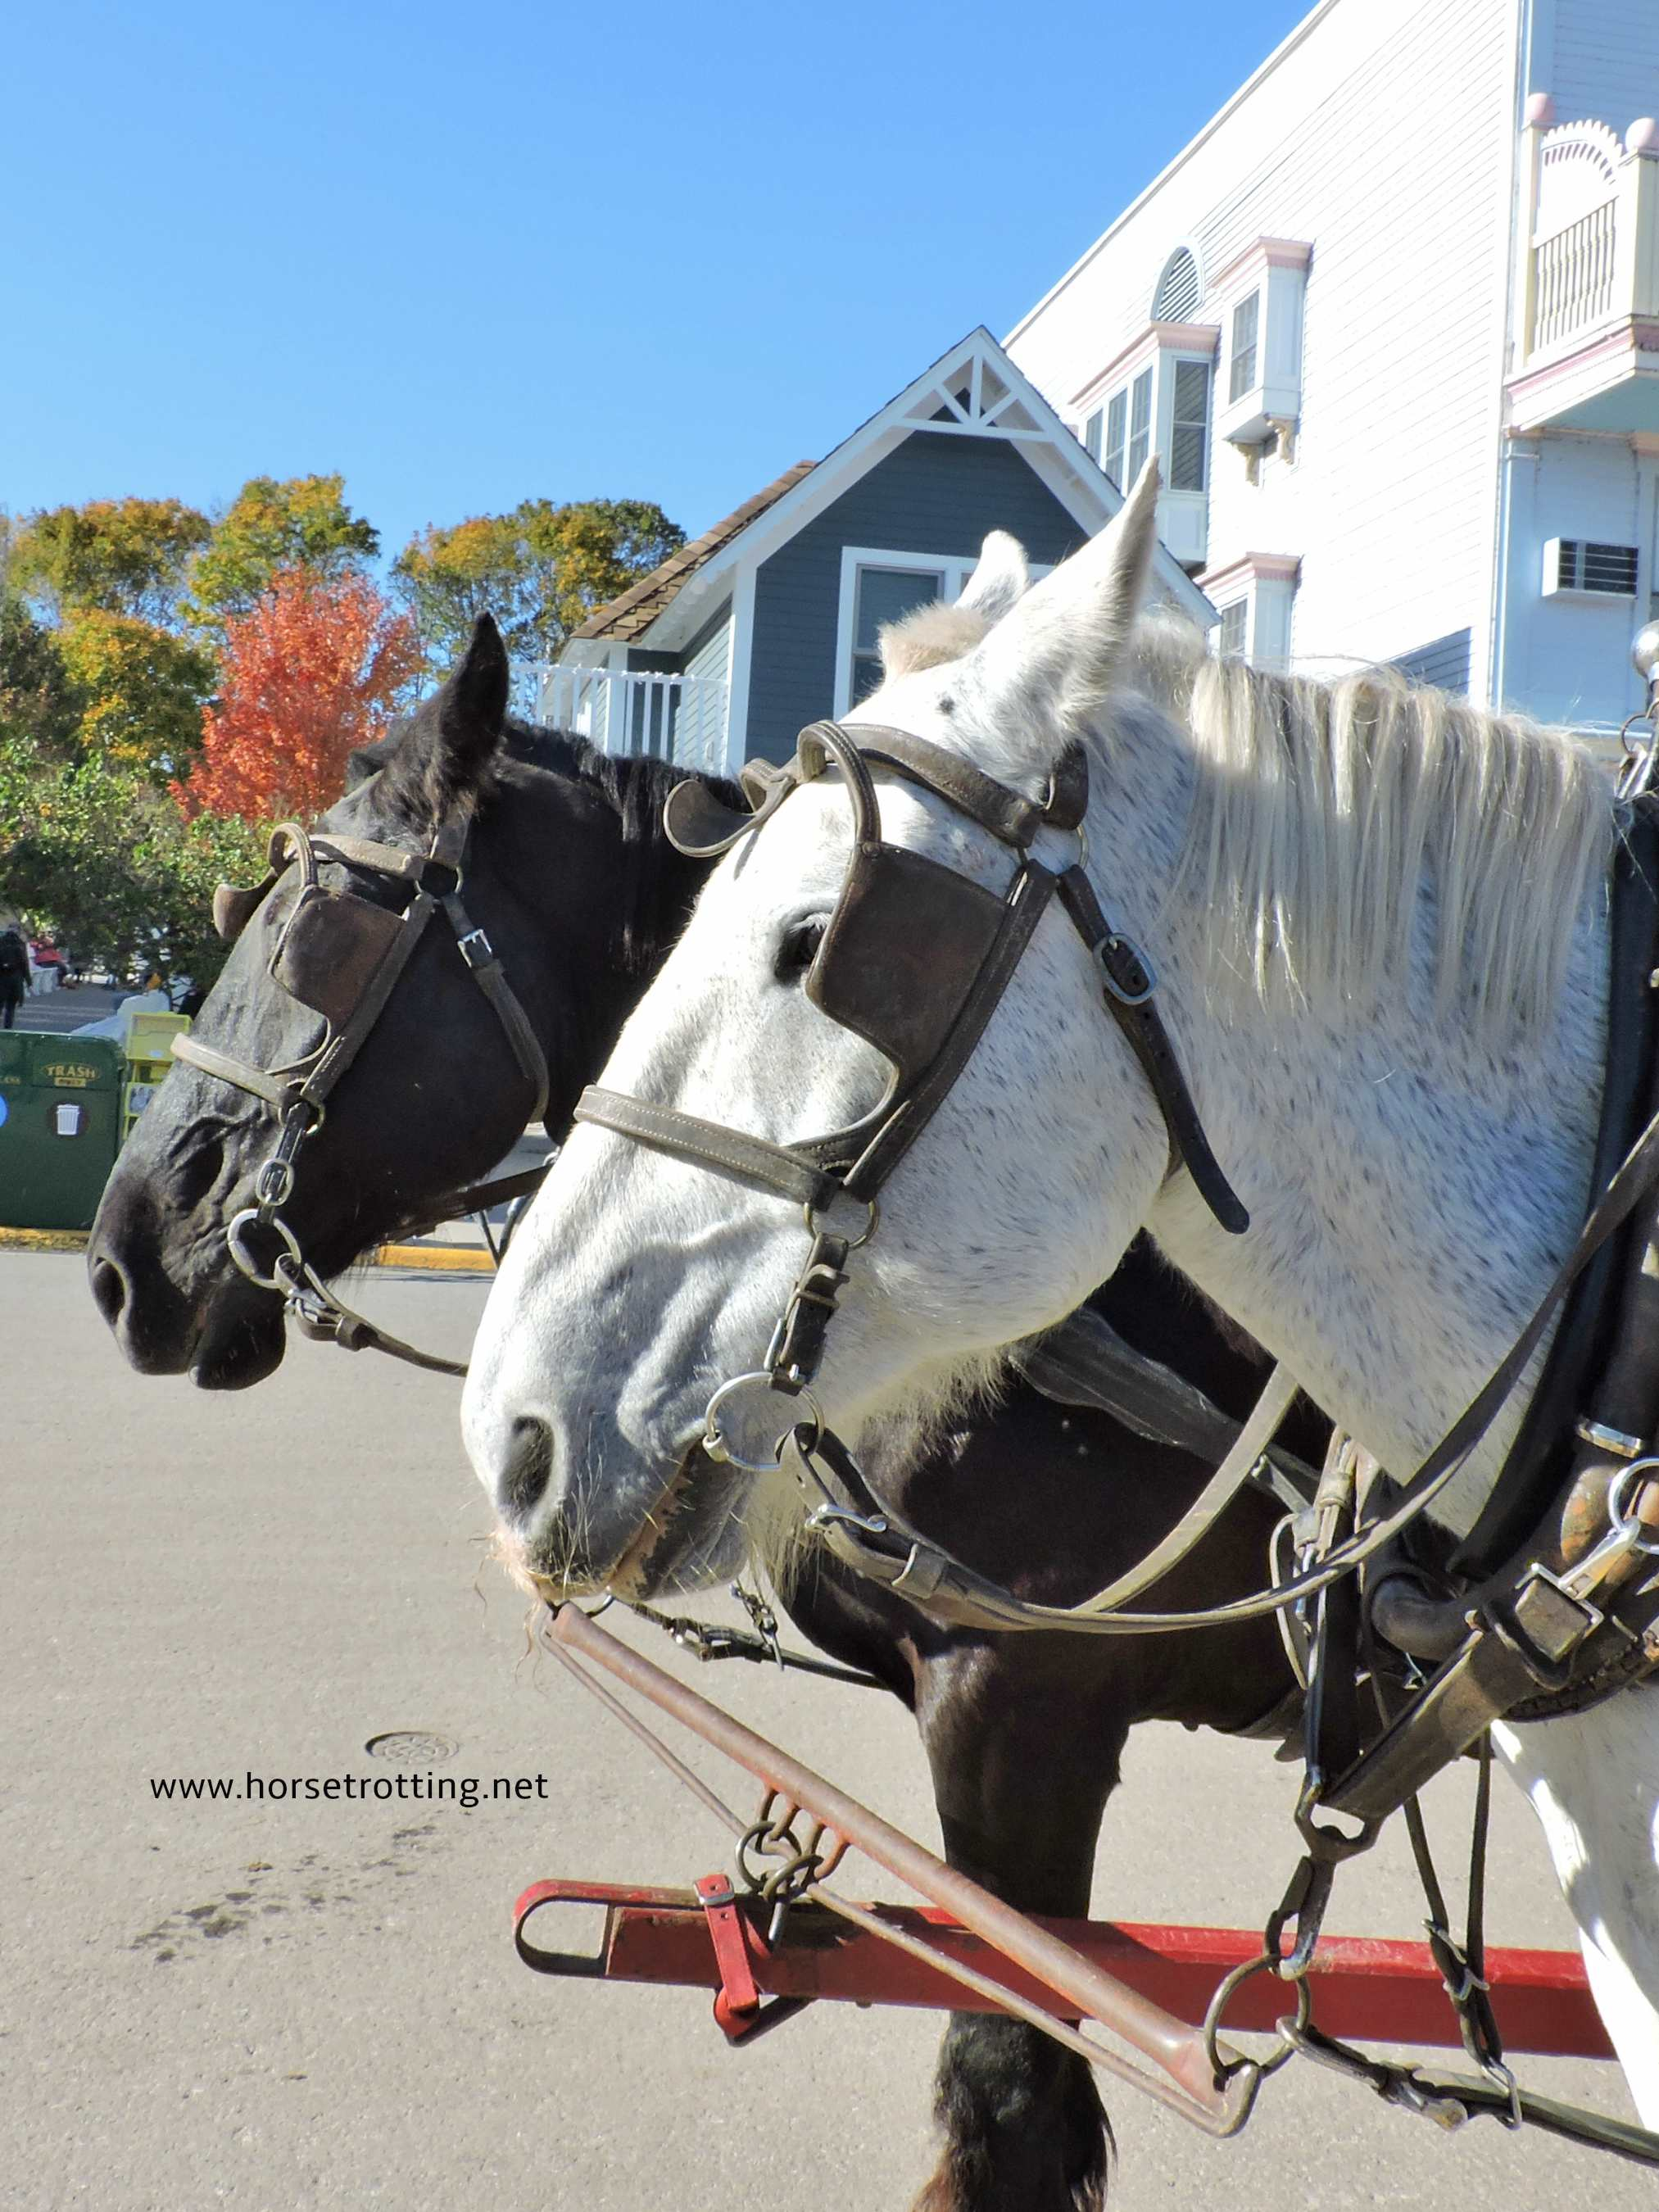 Travel Michigan: Step Back in Time in a Horse-drawn Mackinac Island Carriage